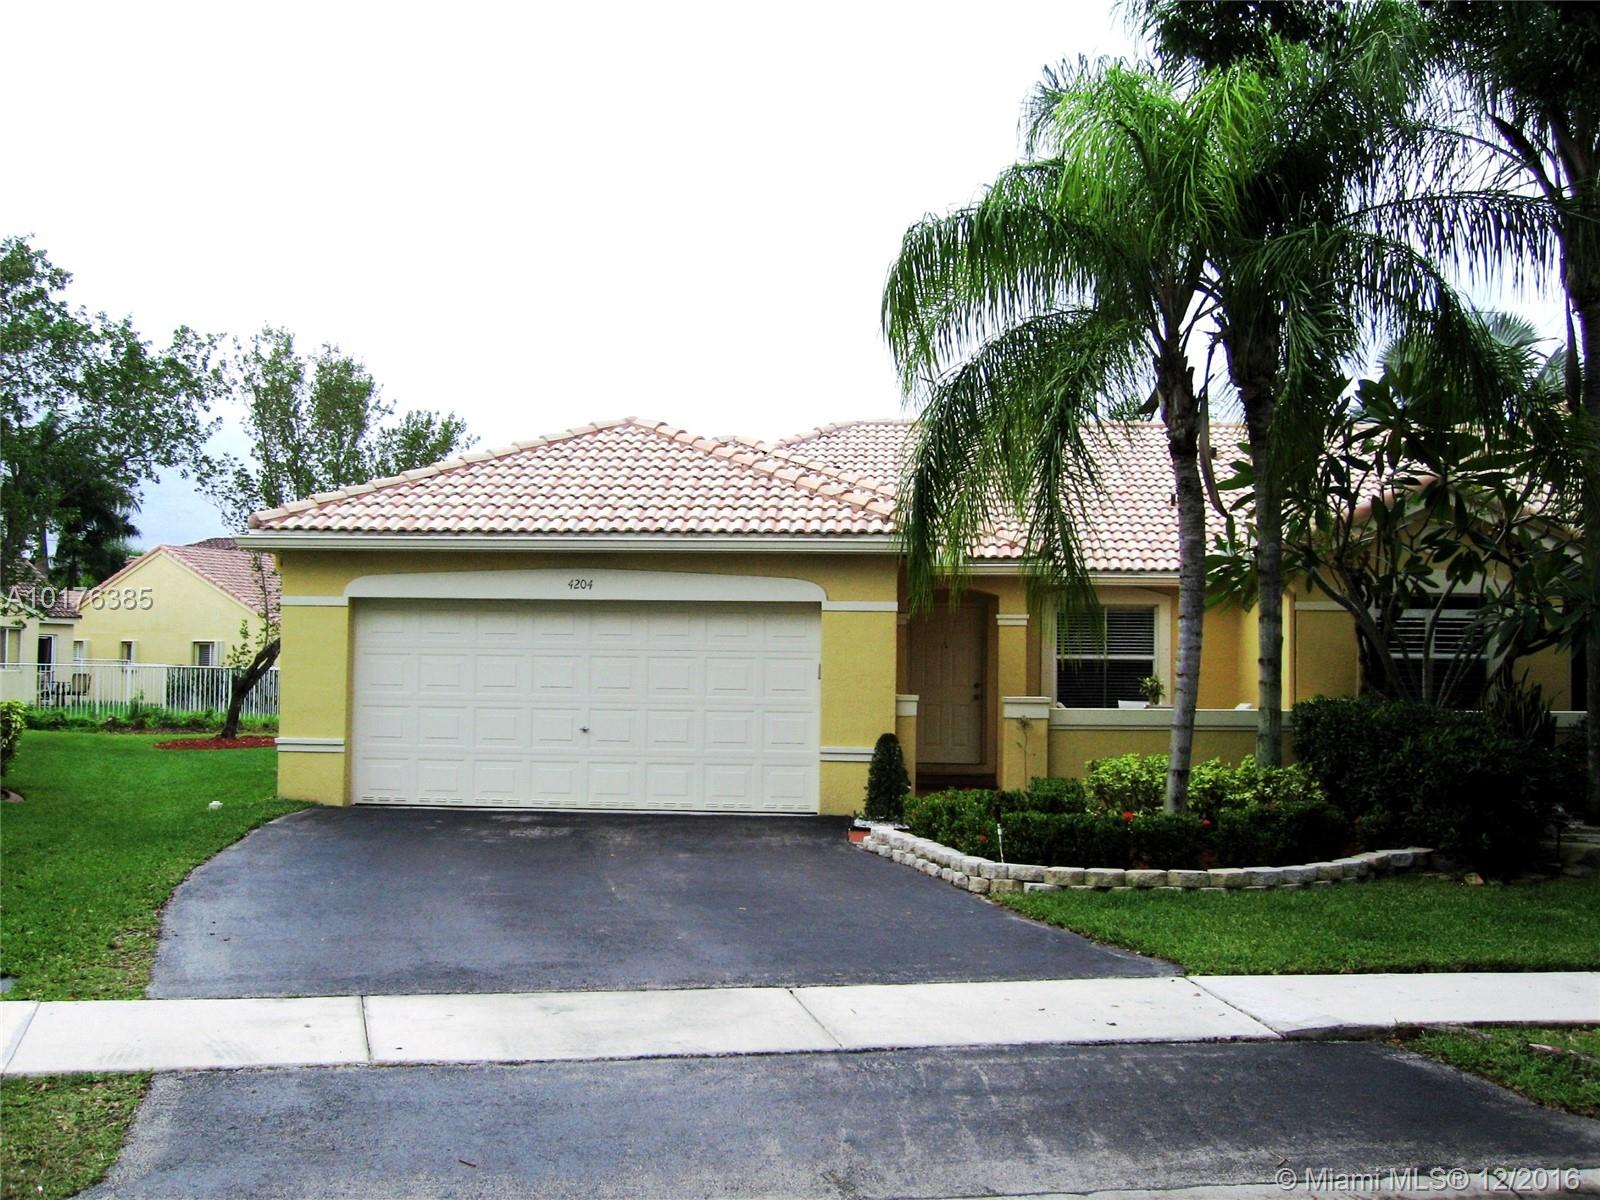 4204 Pine ridge ln-4204 weston--fl-33331-a10176385-Pic01